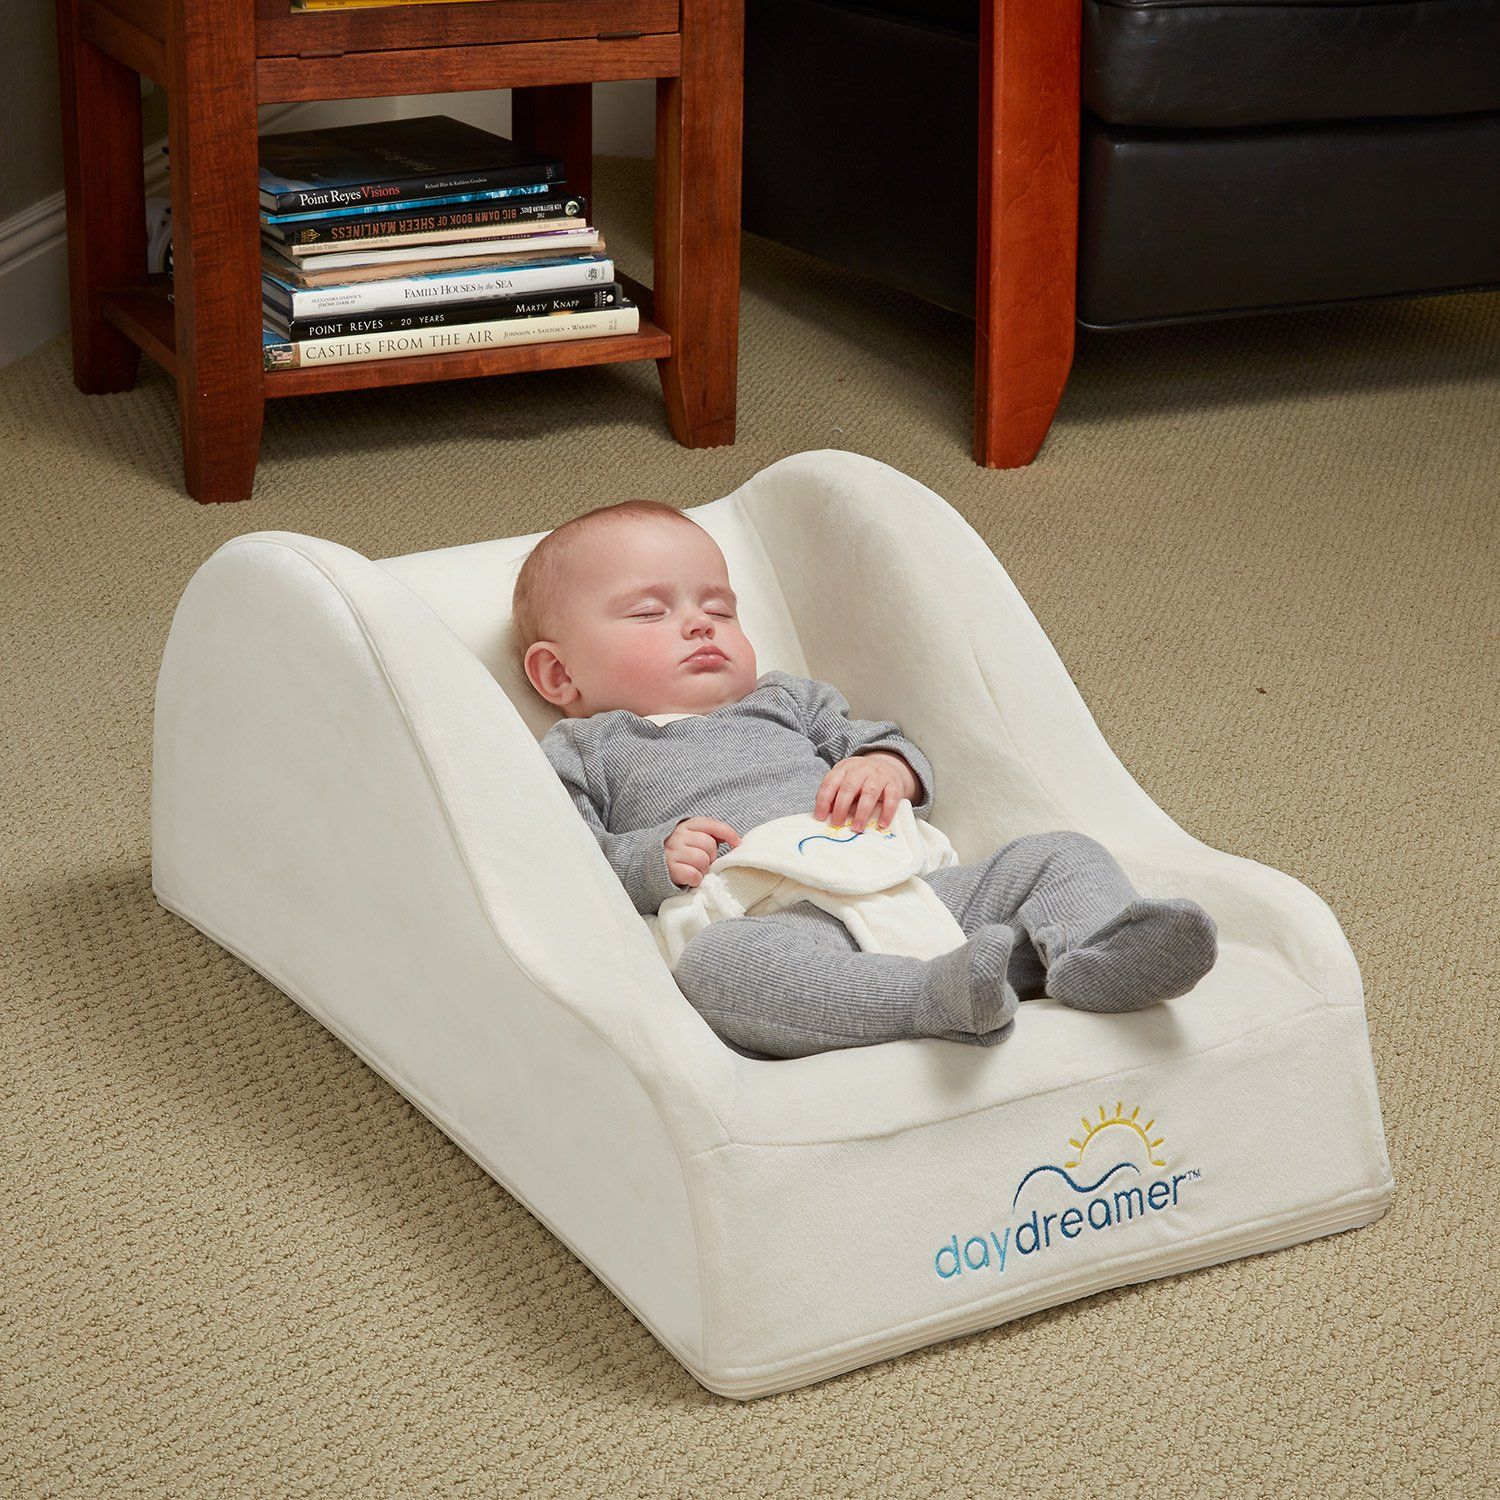 Nursery Furniture Hiccapop Daydreamer Infant Sleeper Lounger Chills And Pains